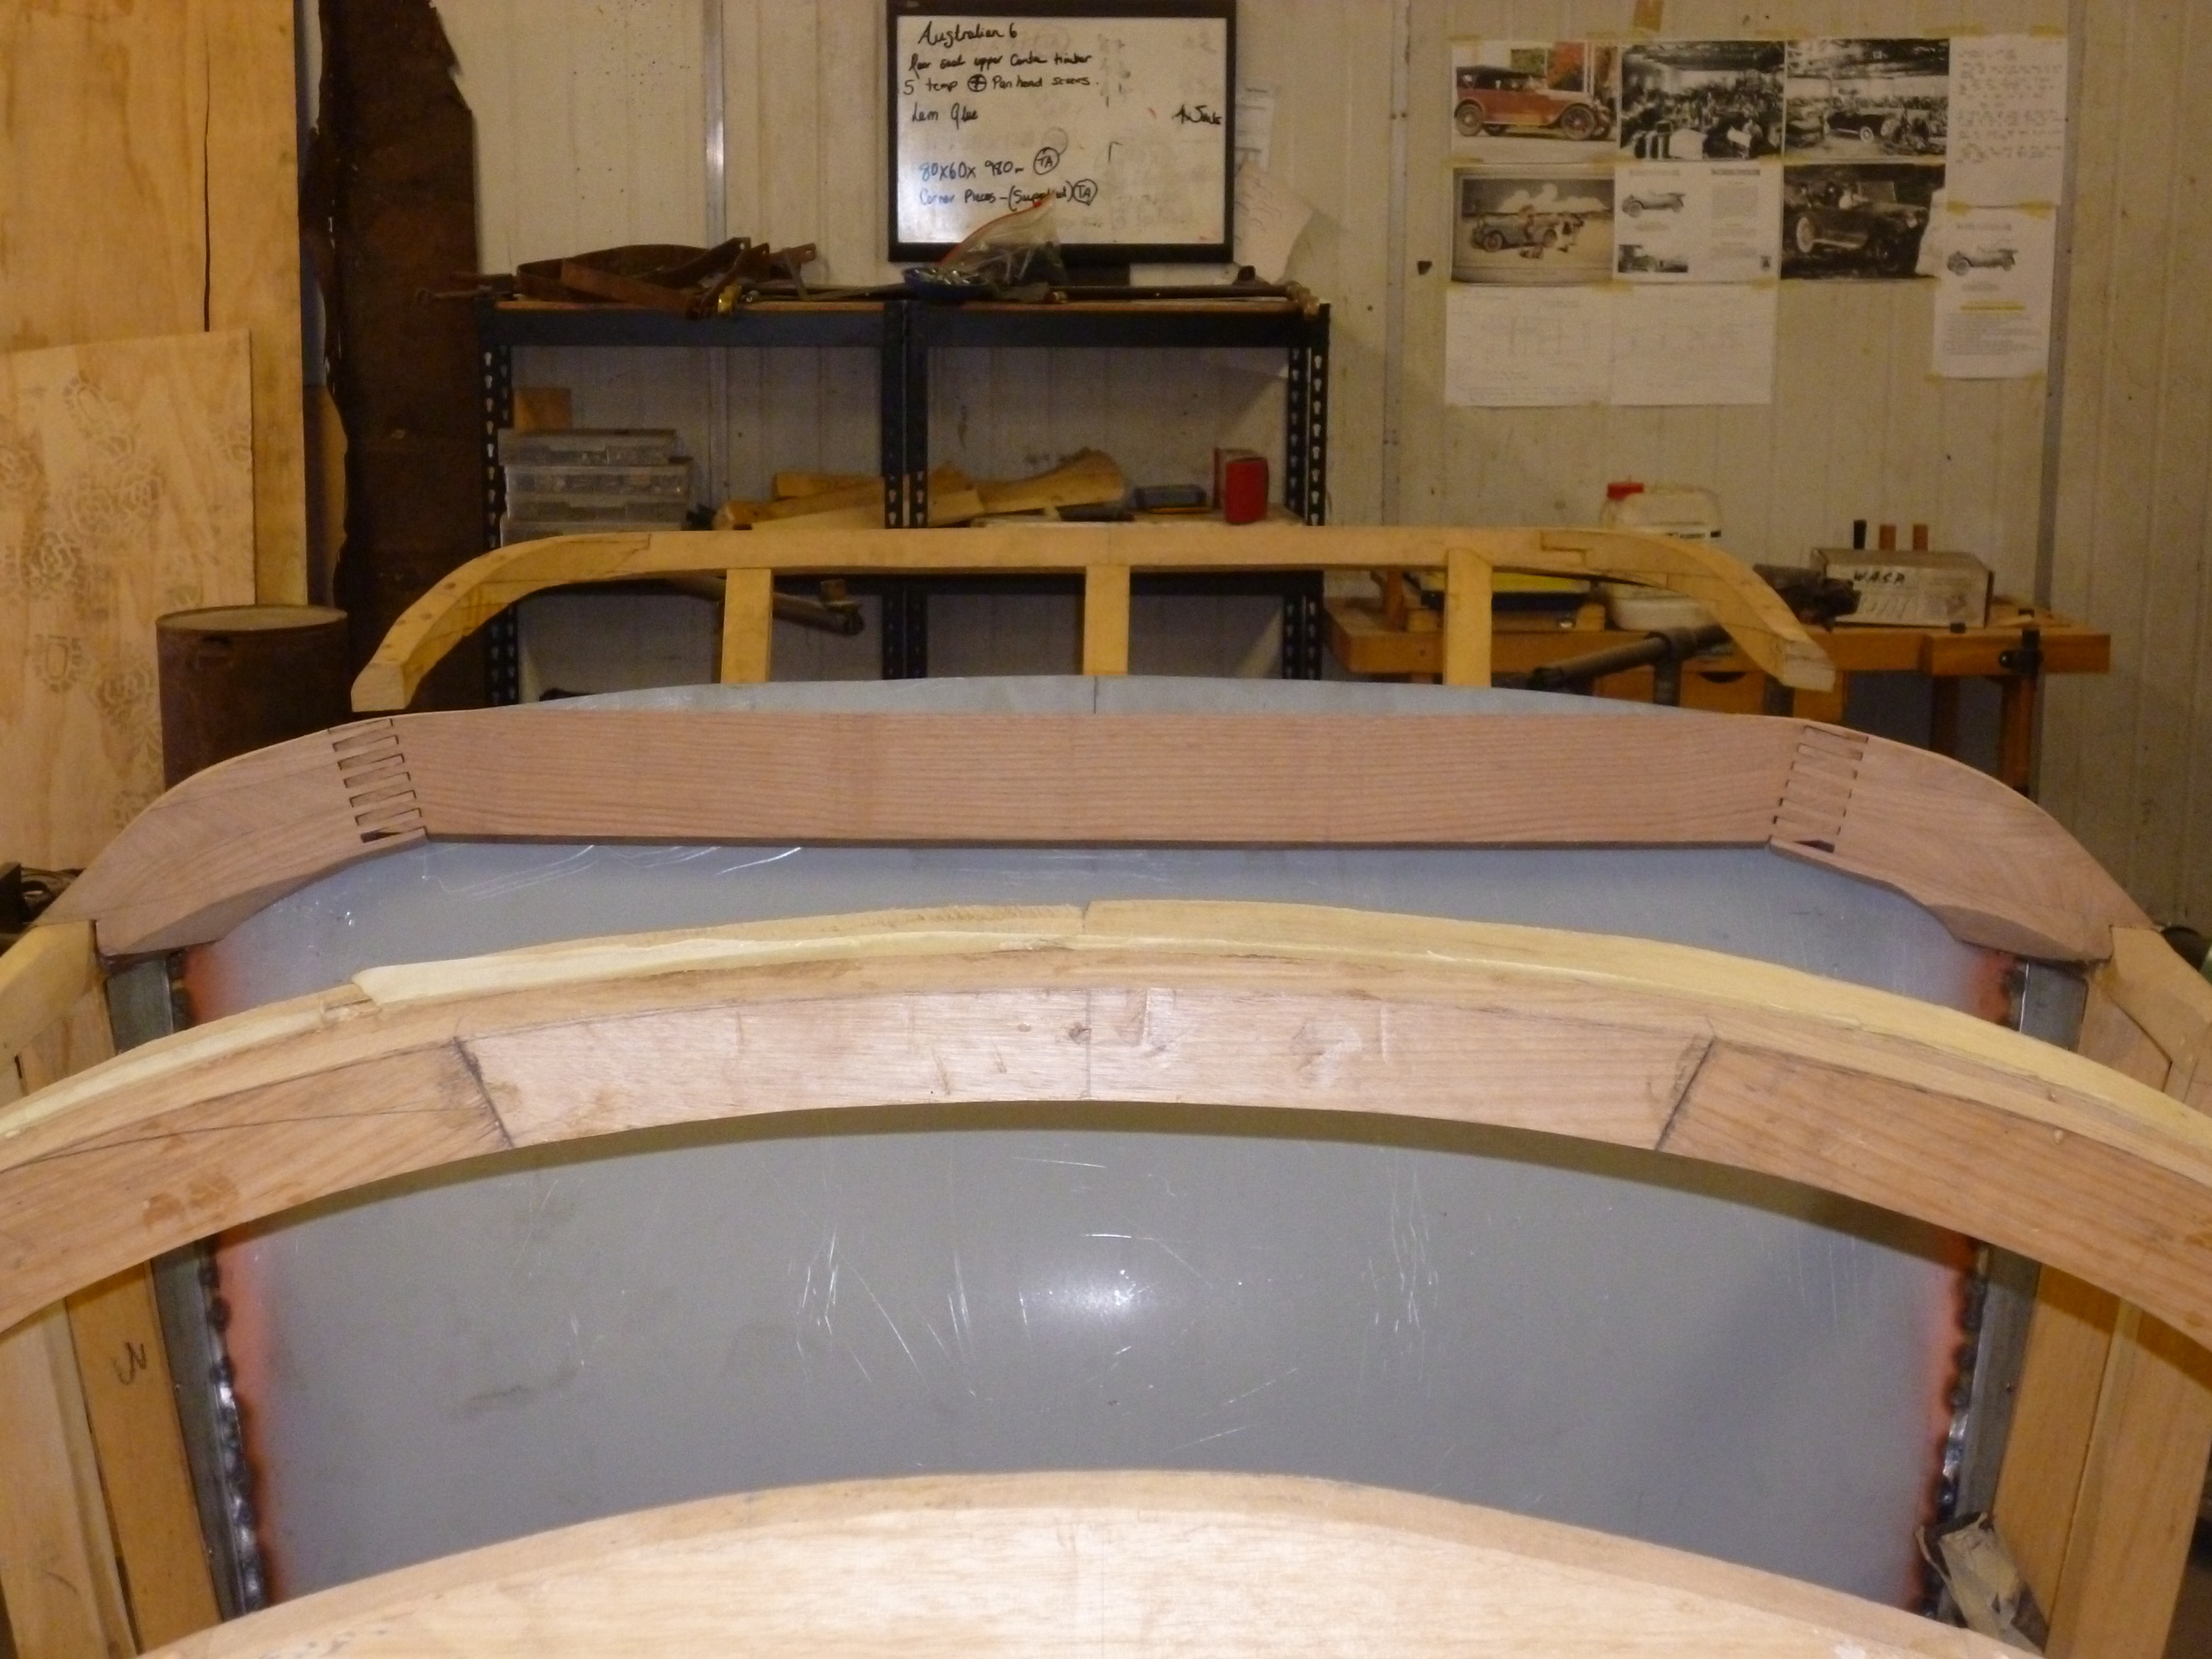 Period joints have been used in the new timber frame including finger joints. The joints are rough cut and then finally fitted and shaped. The front seat panel acts as a brace and as a pattern. The second group of photos show the new sections of the timber frame being built.